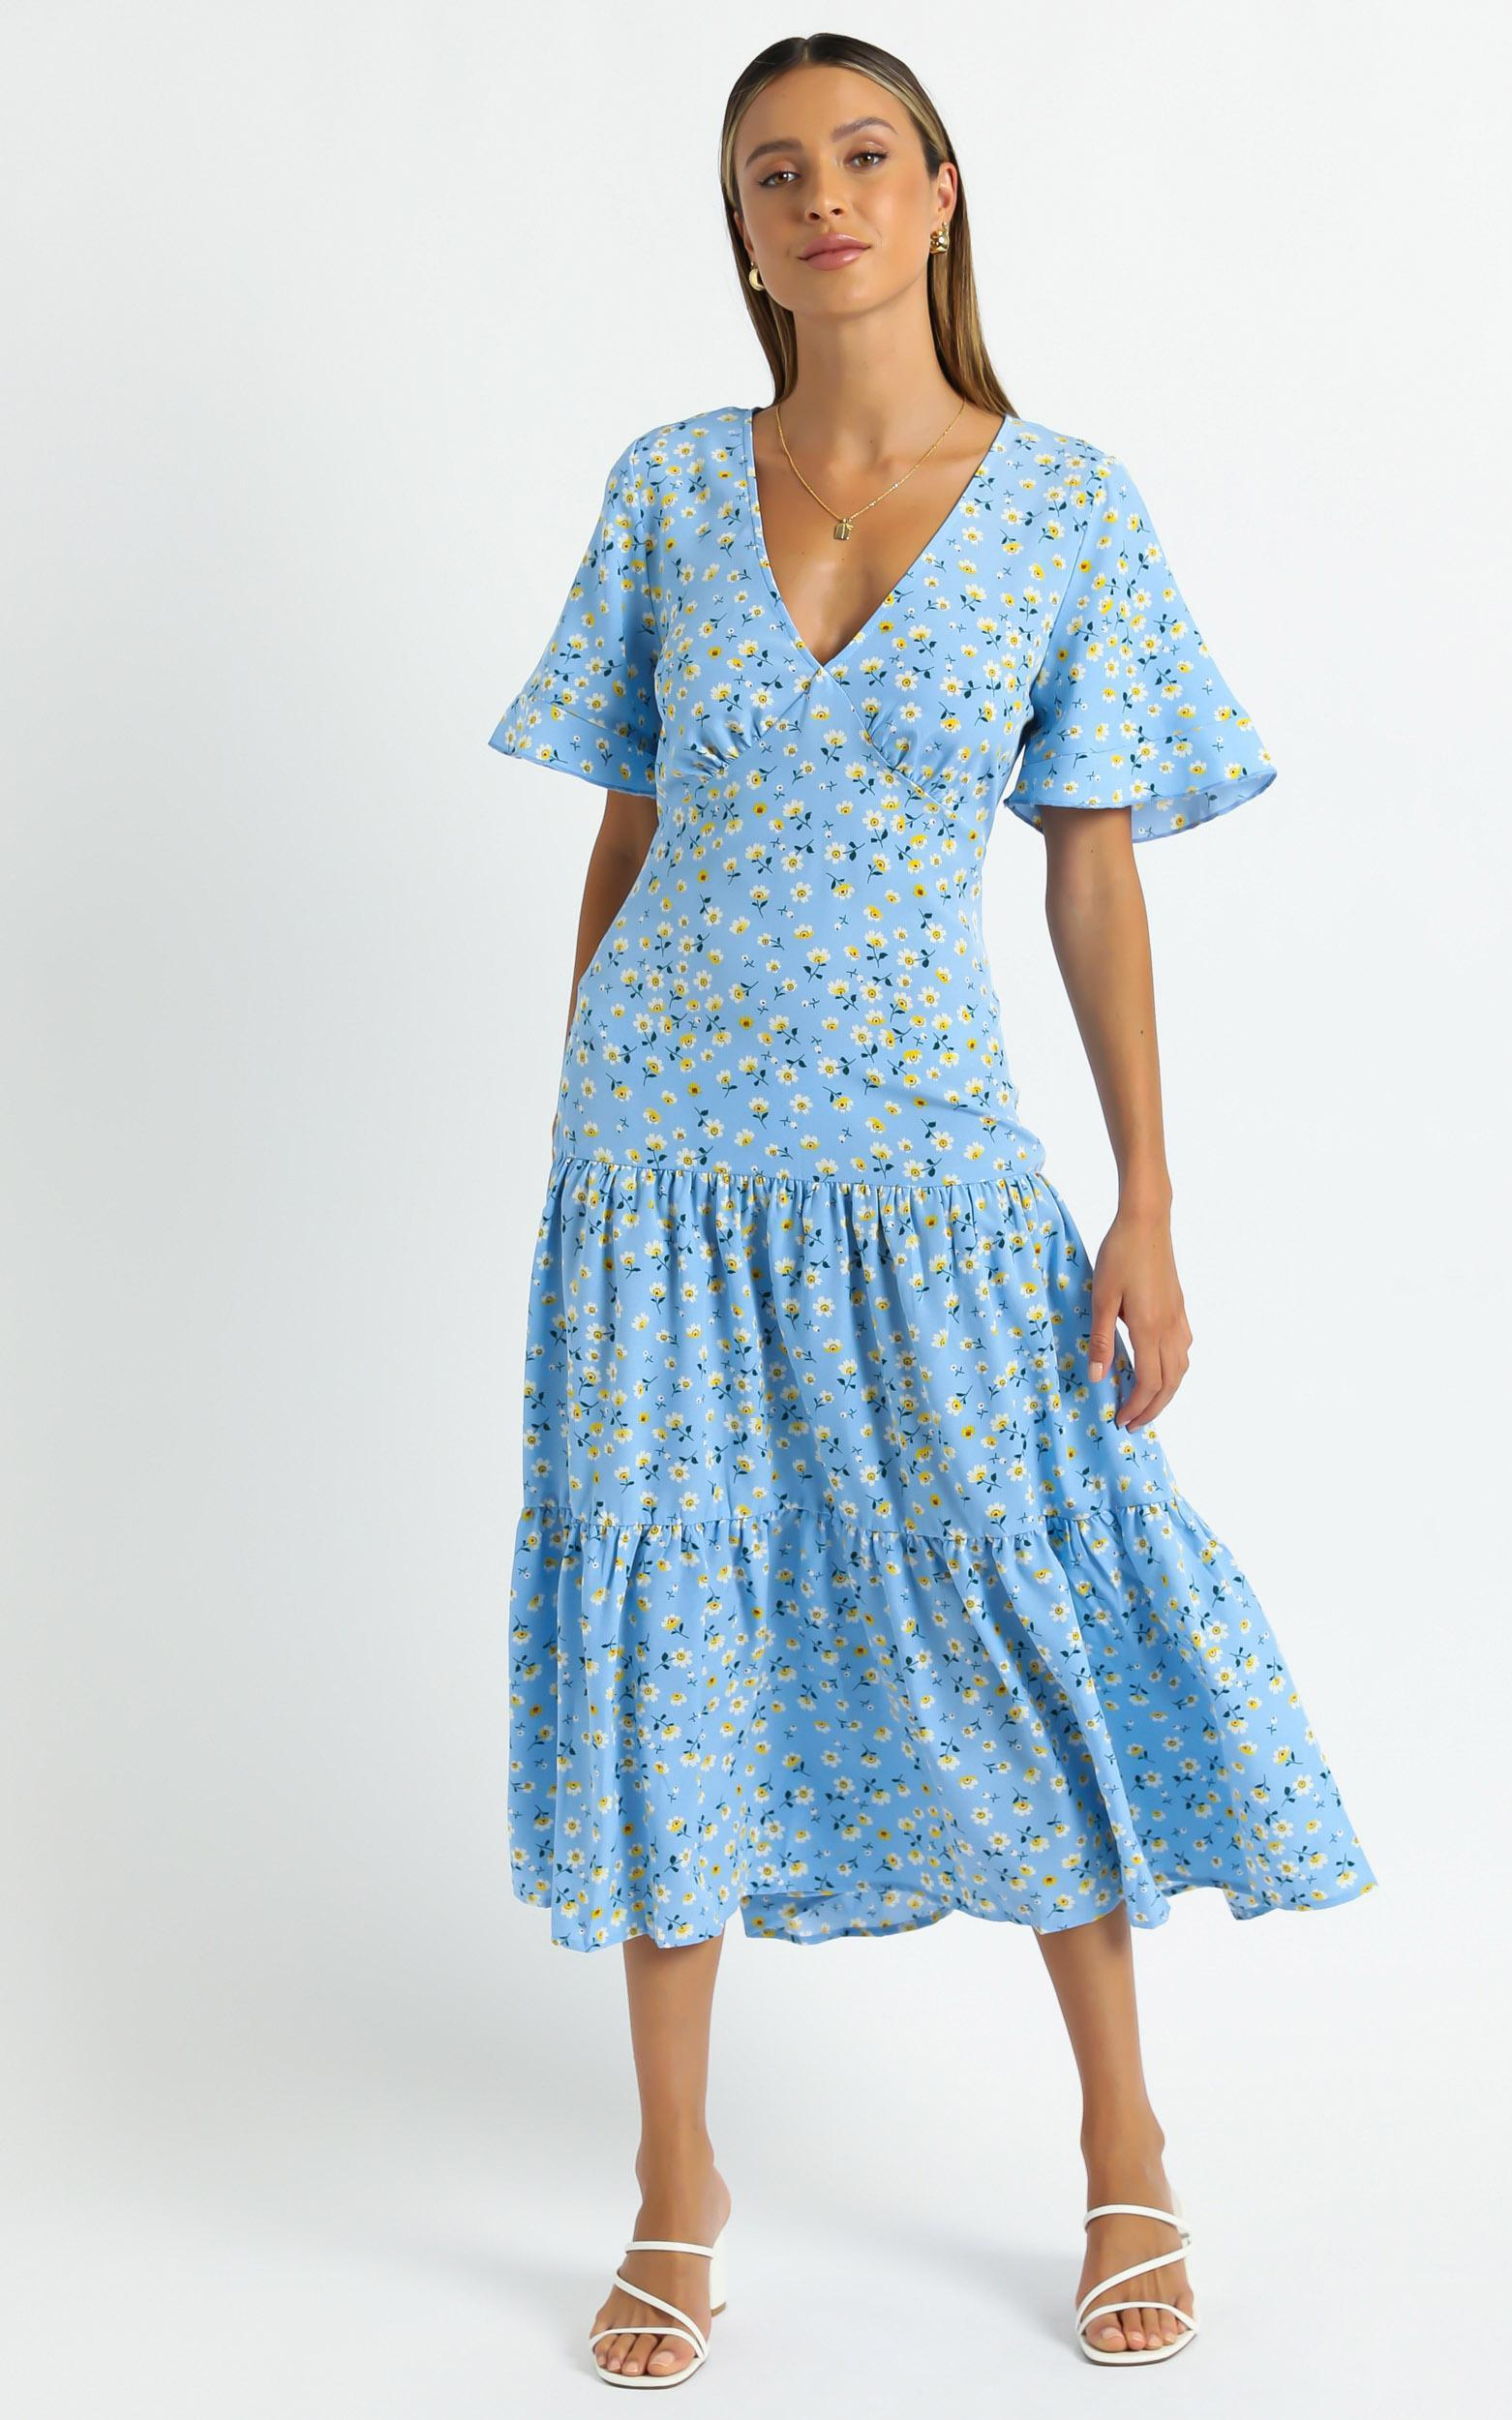 Oklahoma Dress in Blue Floral - 6 (XS), Blue, hi-res image number null